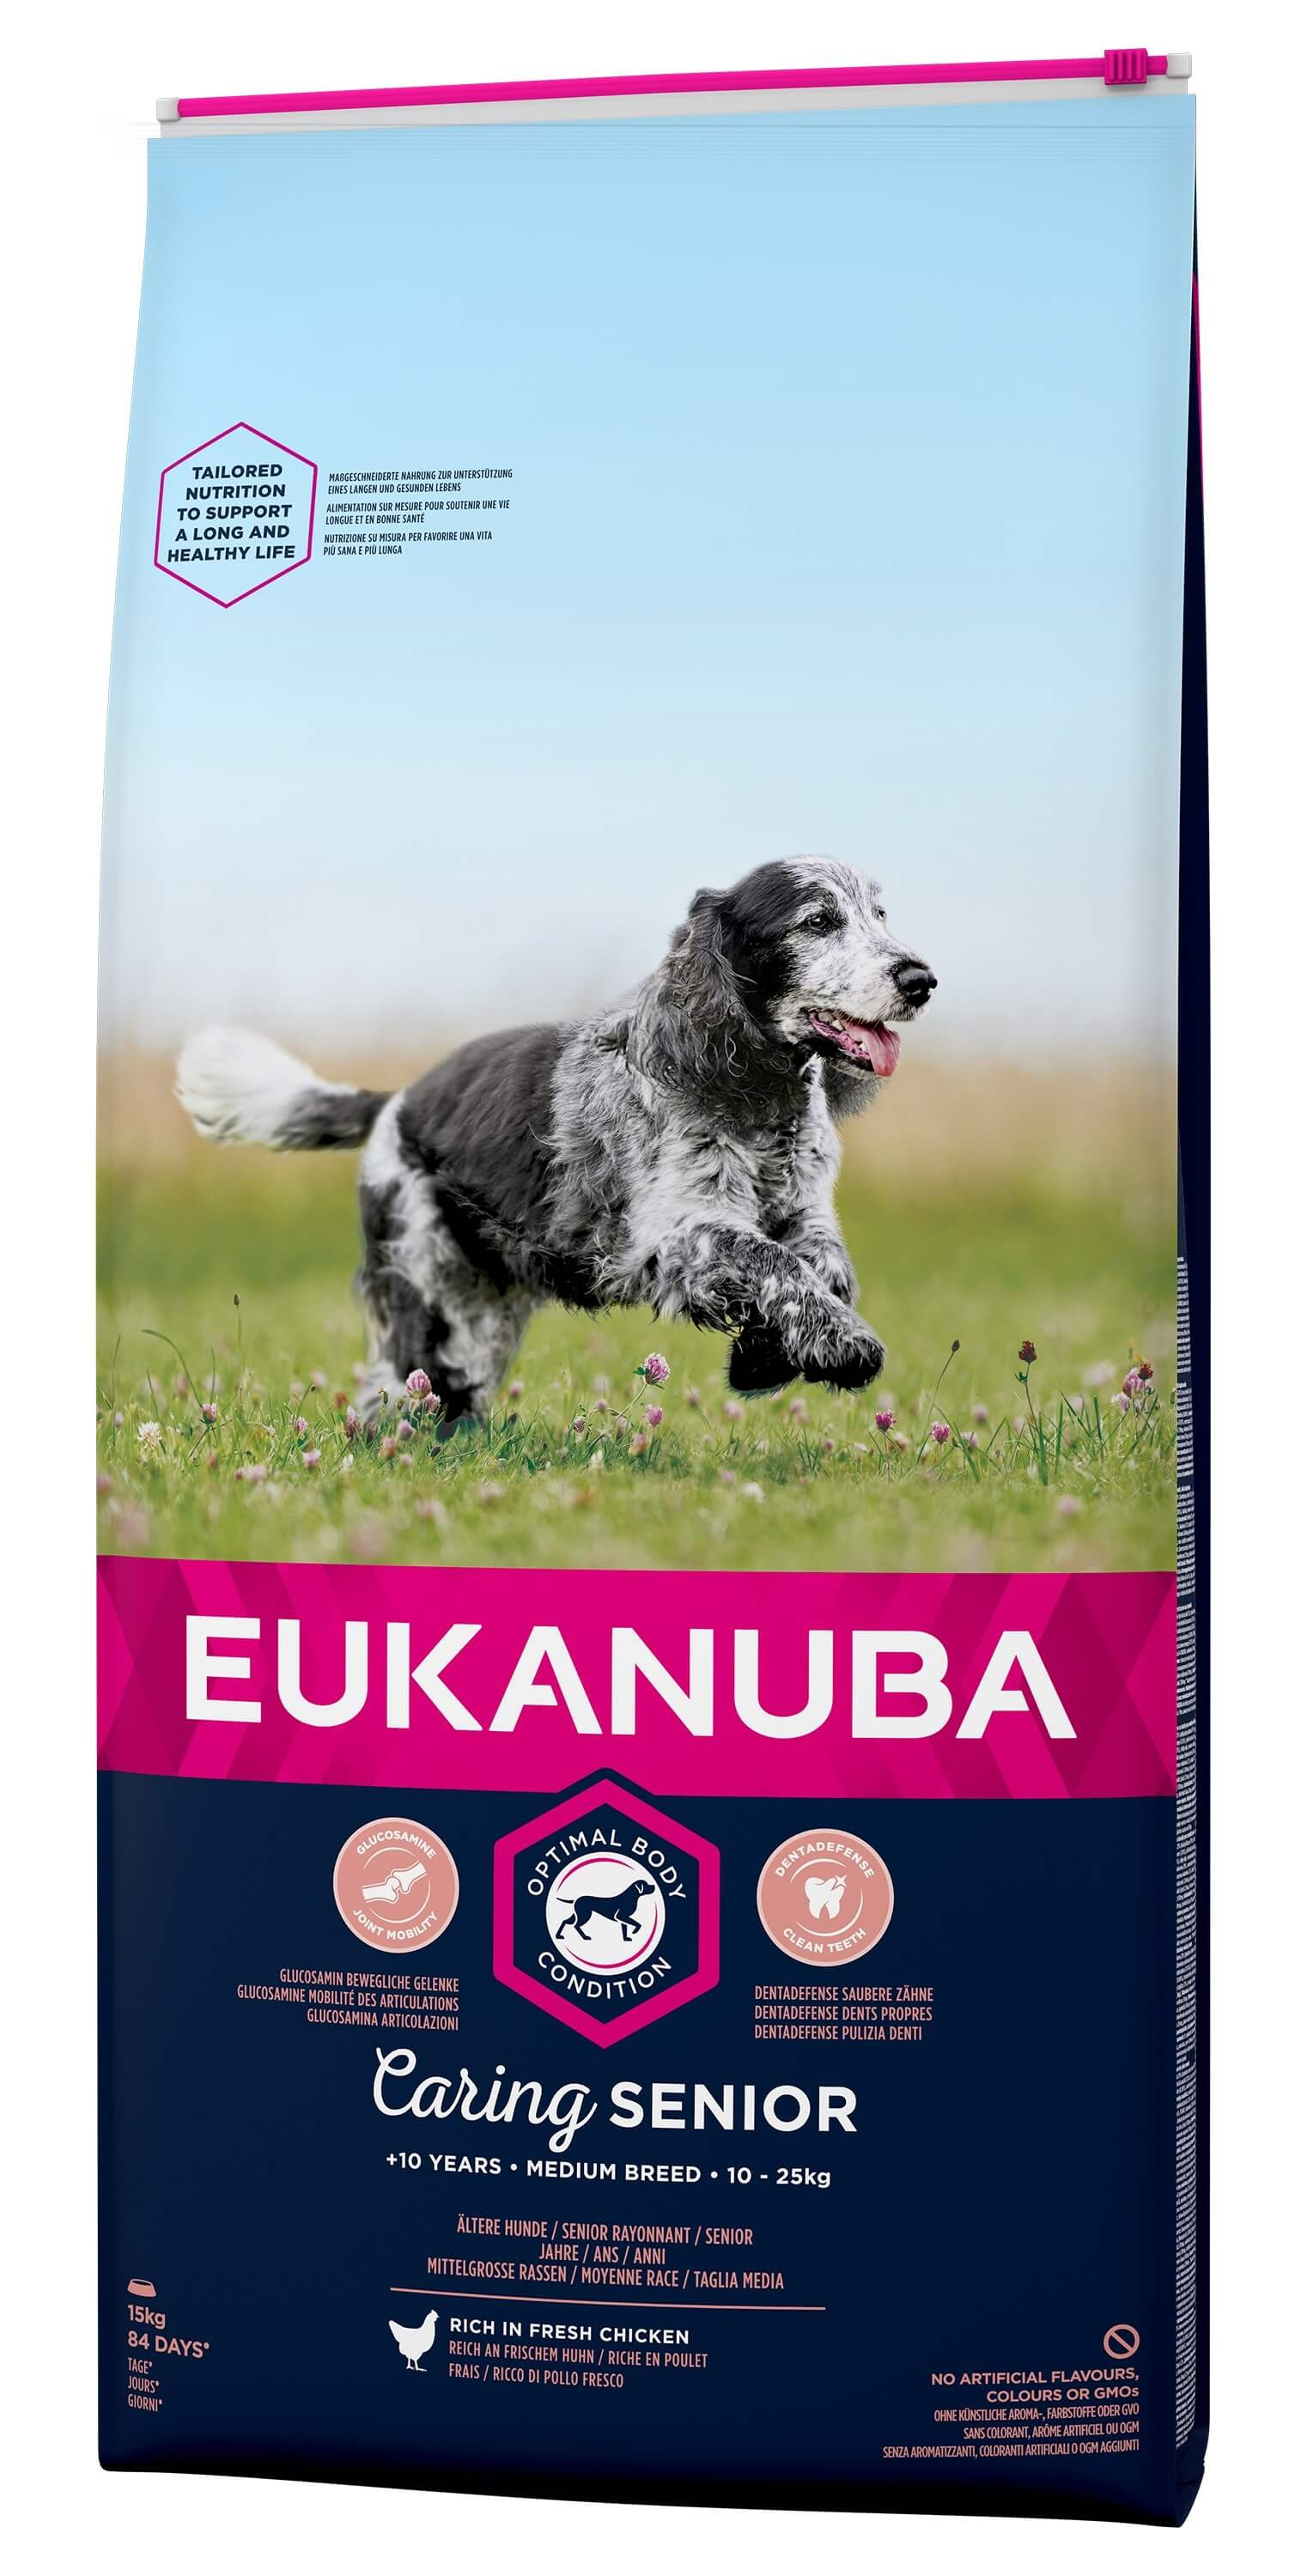 Eukanuba Caring Senior Medium Breed au poulet pour Chien